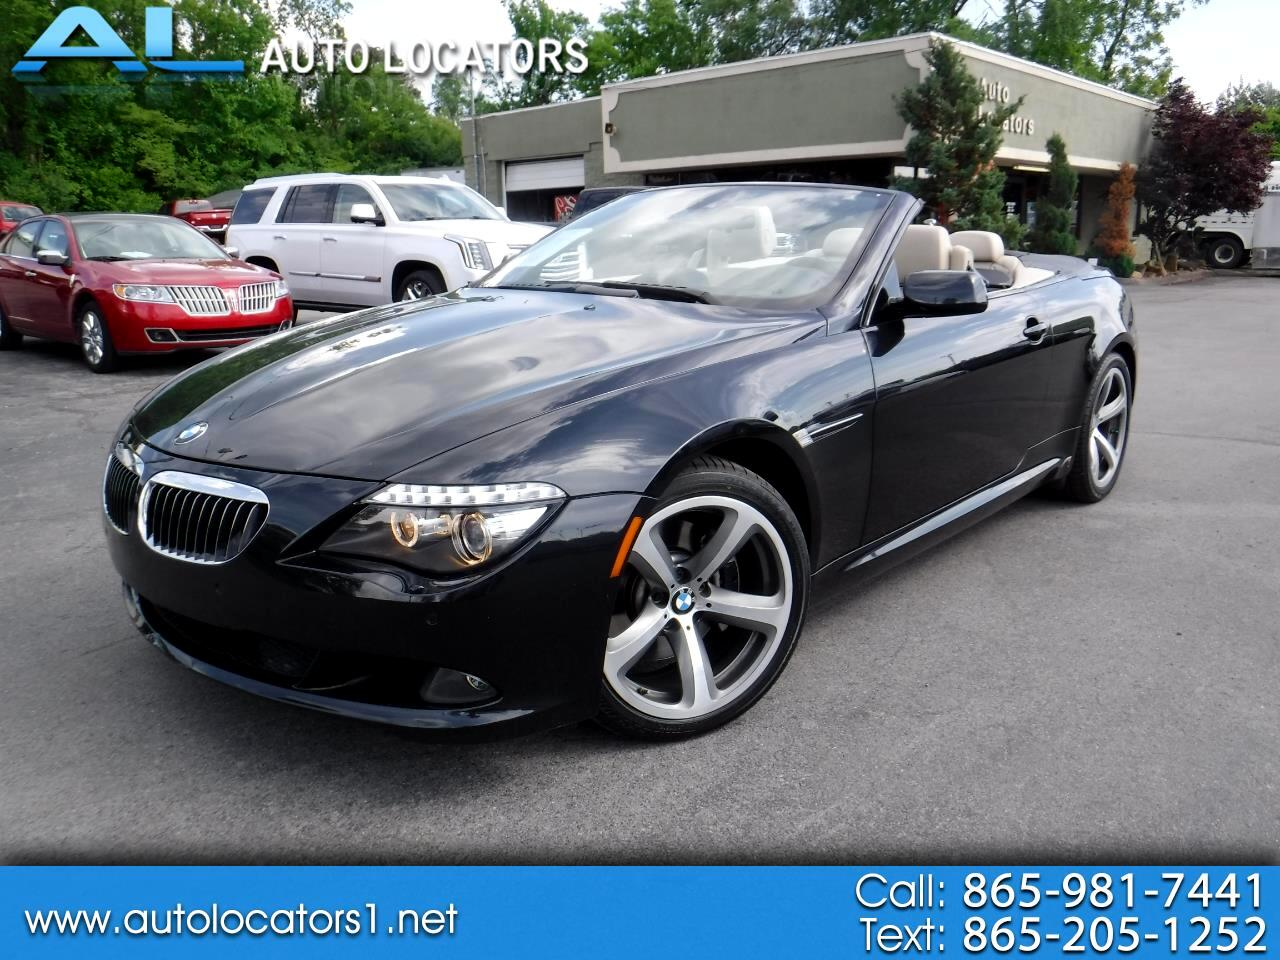 BMW 6 Series 2dr Conv 650i 2009